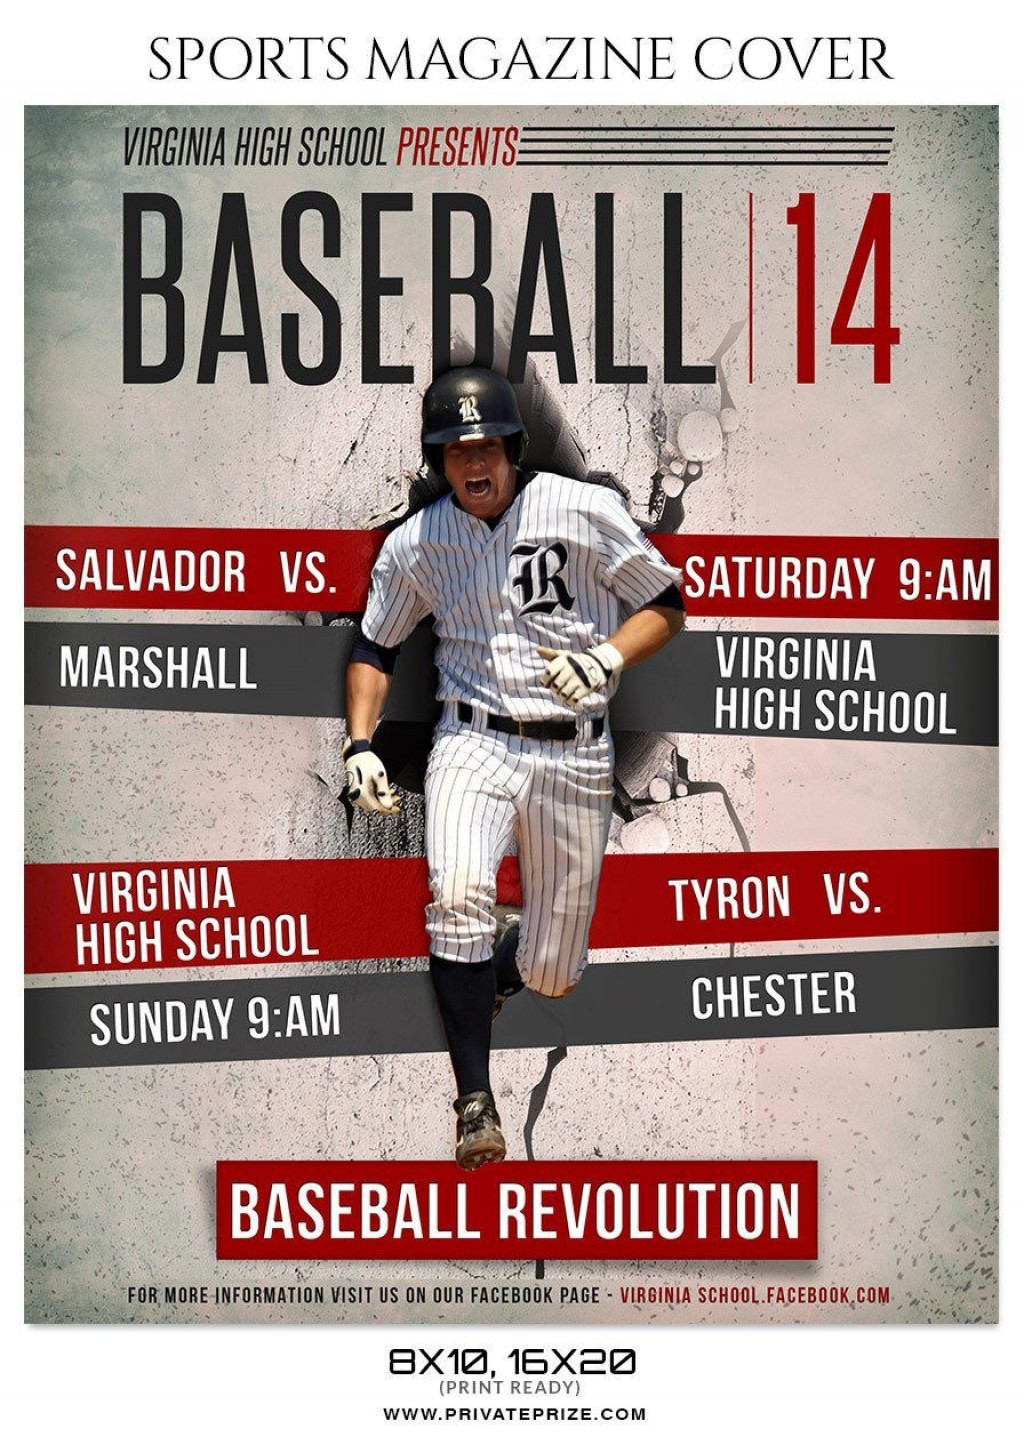 009 Fearsome Photoshop Baseball Magazine Cover Template Inspiration Large